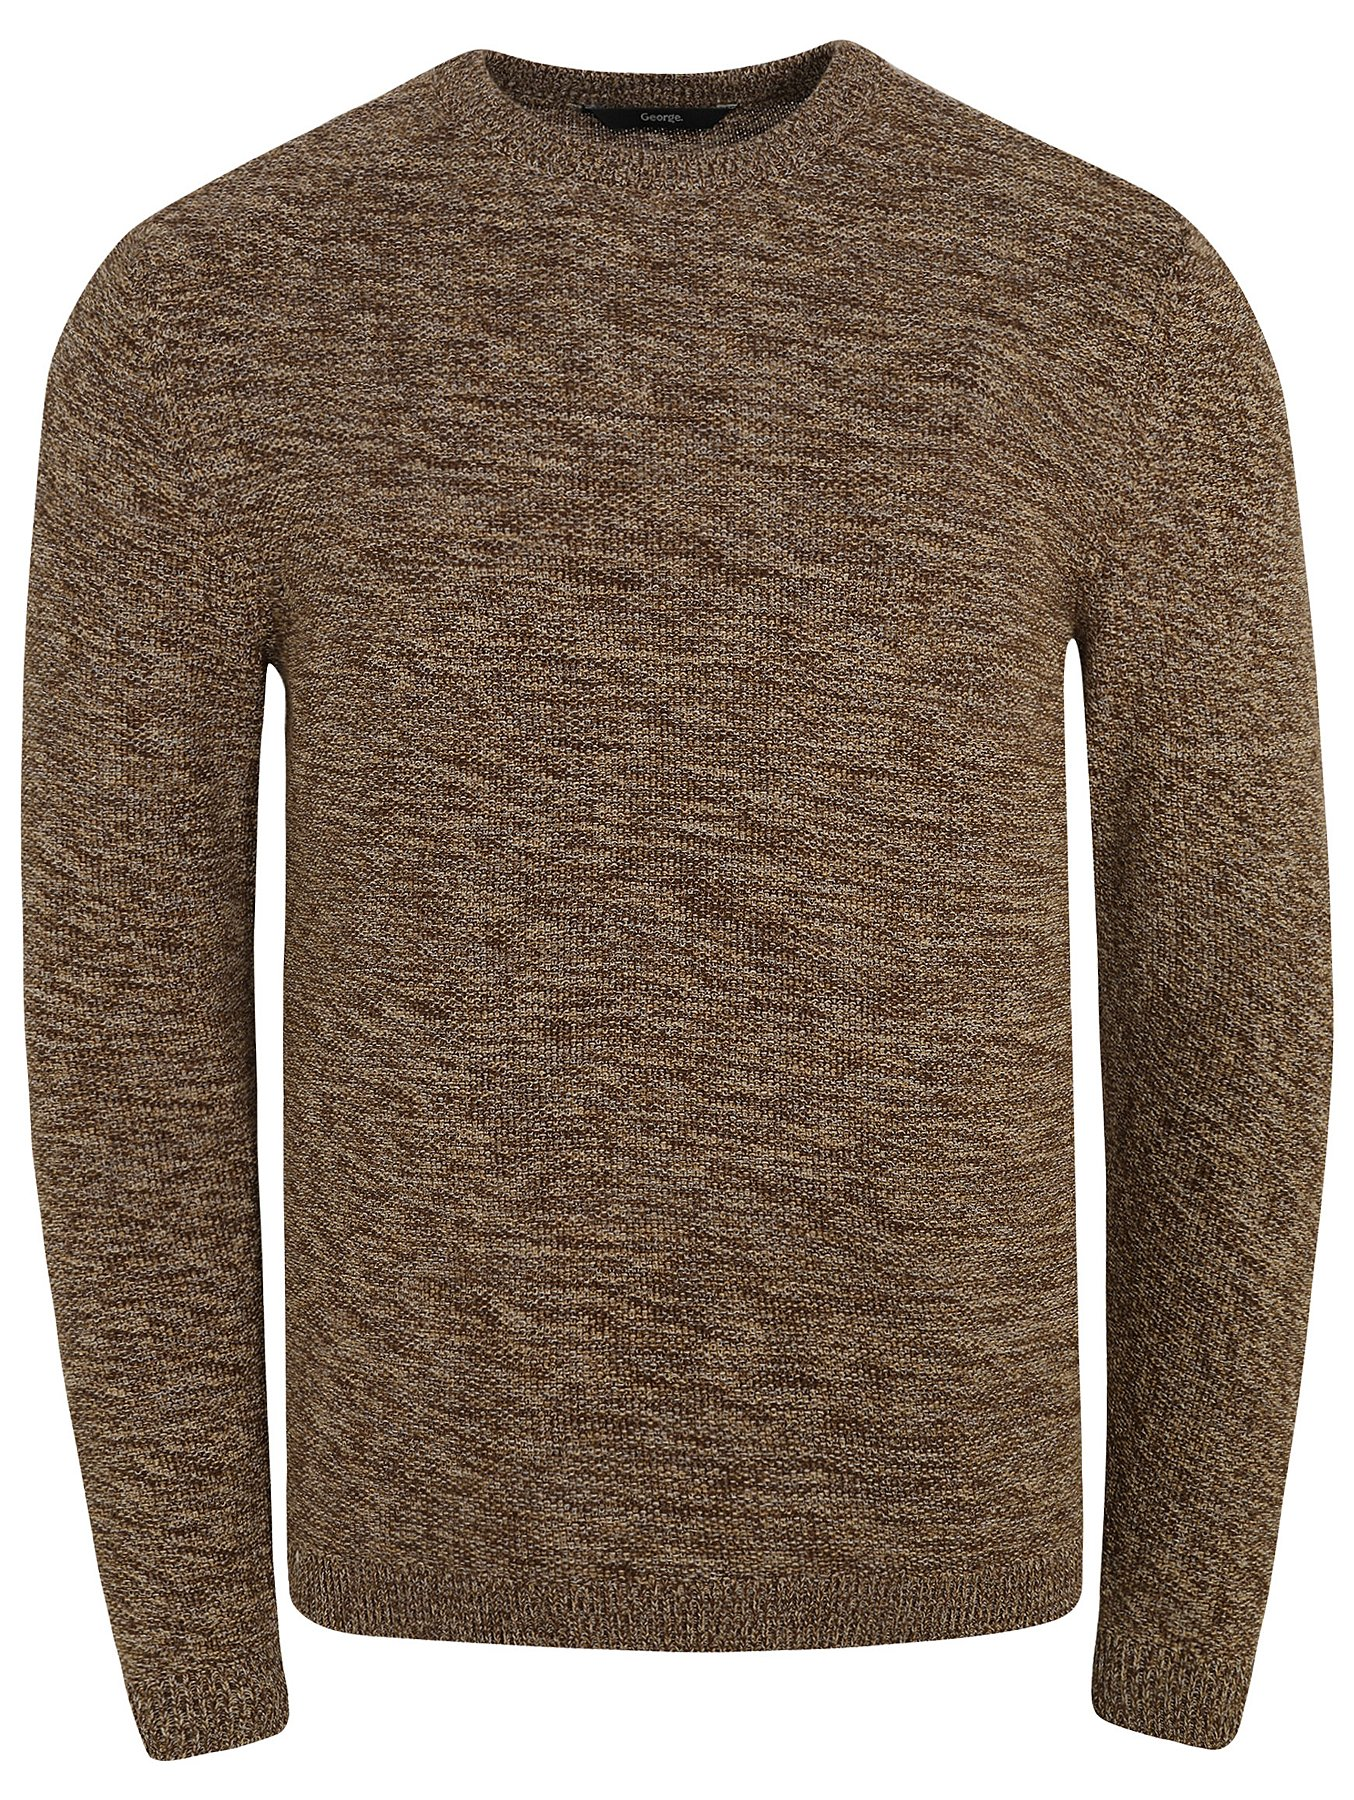 6c492ad3156 Marl Brown Chunky Knit Crew Neck Jumper